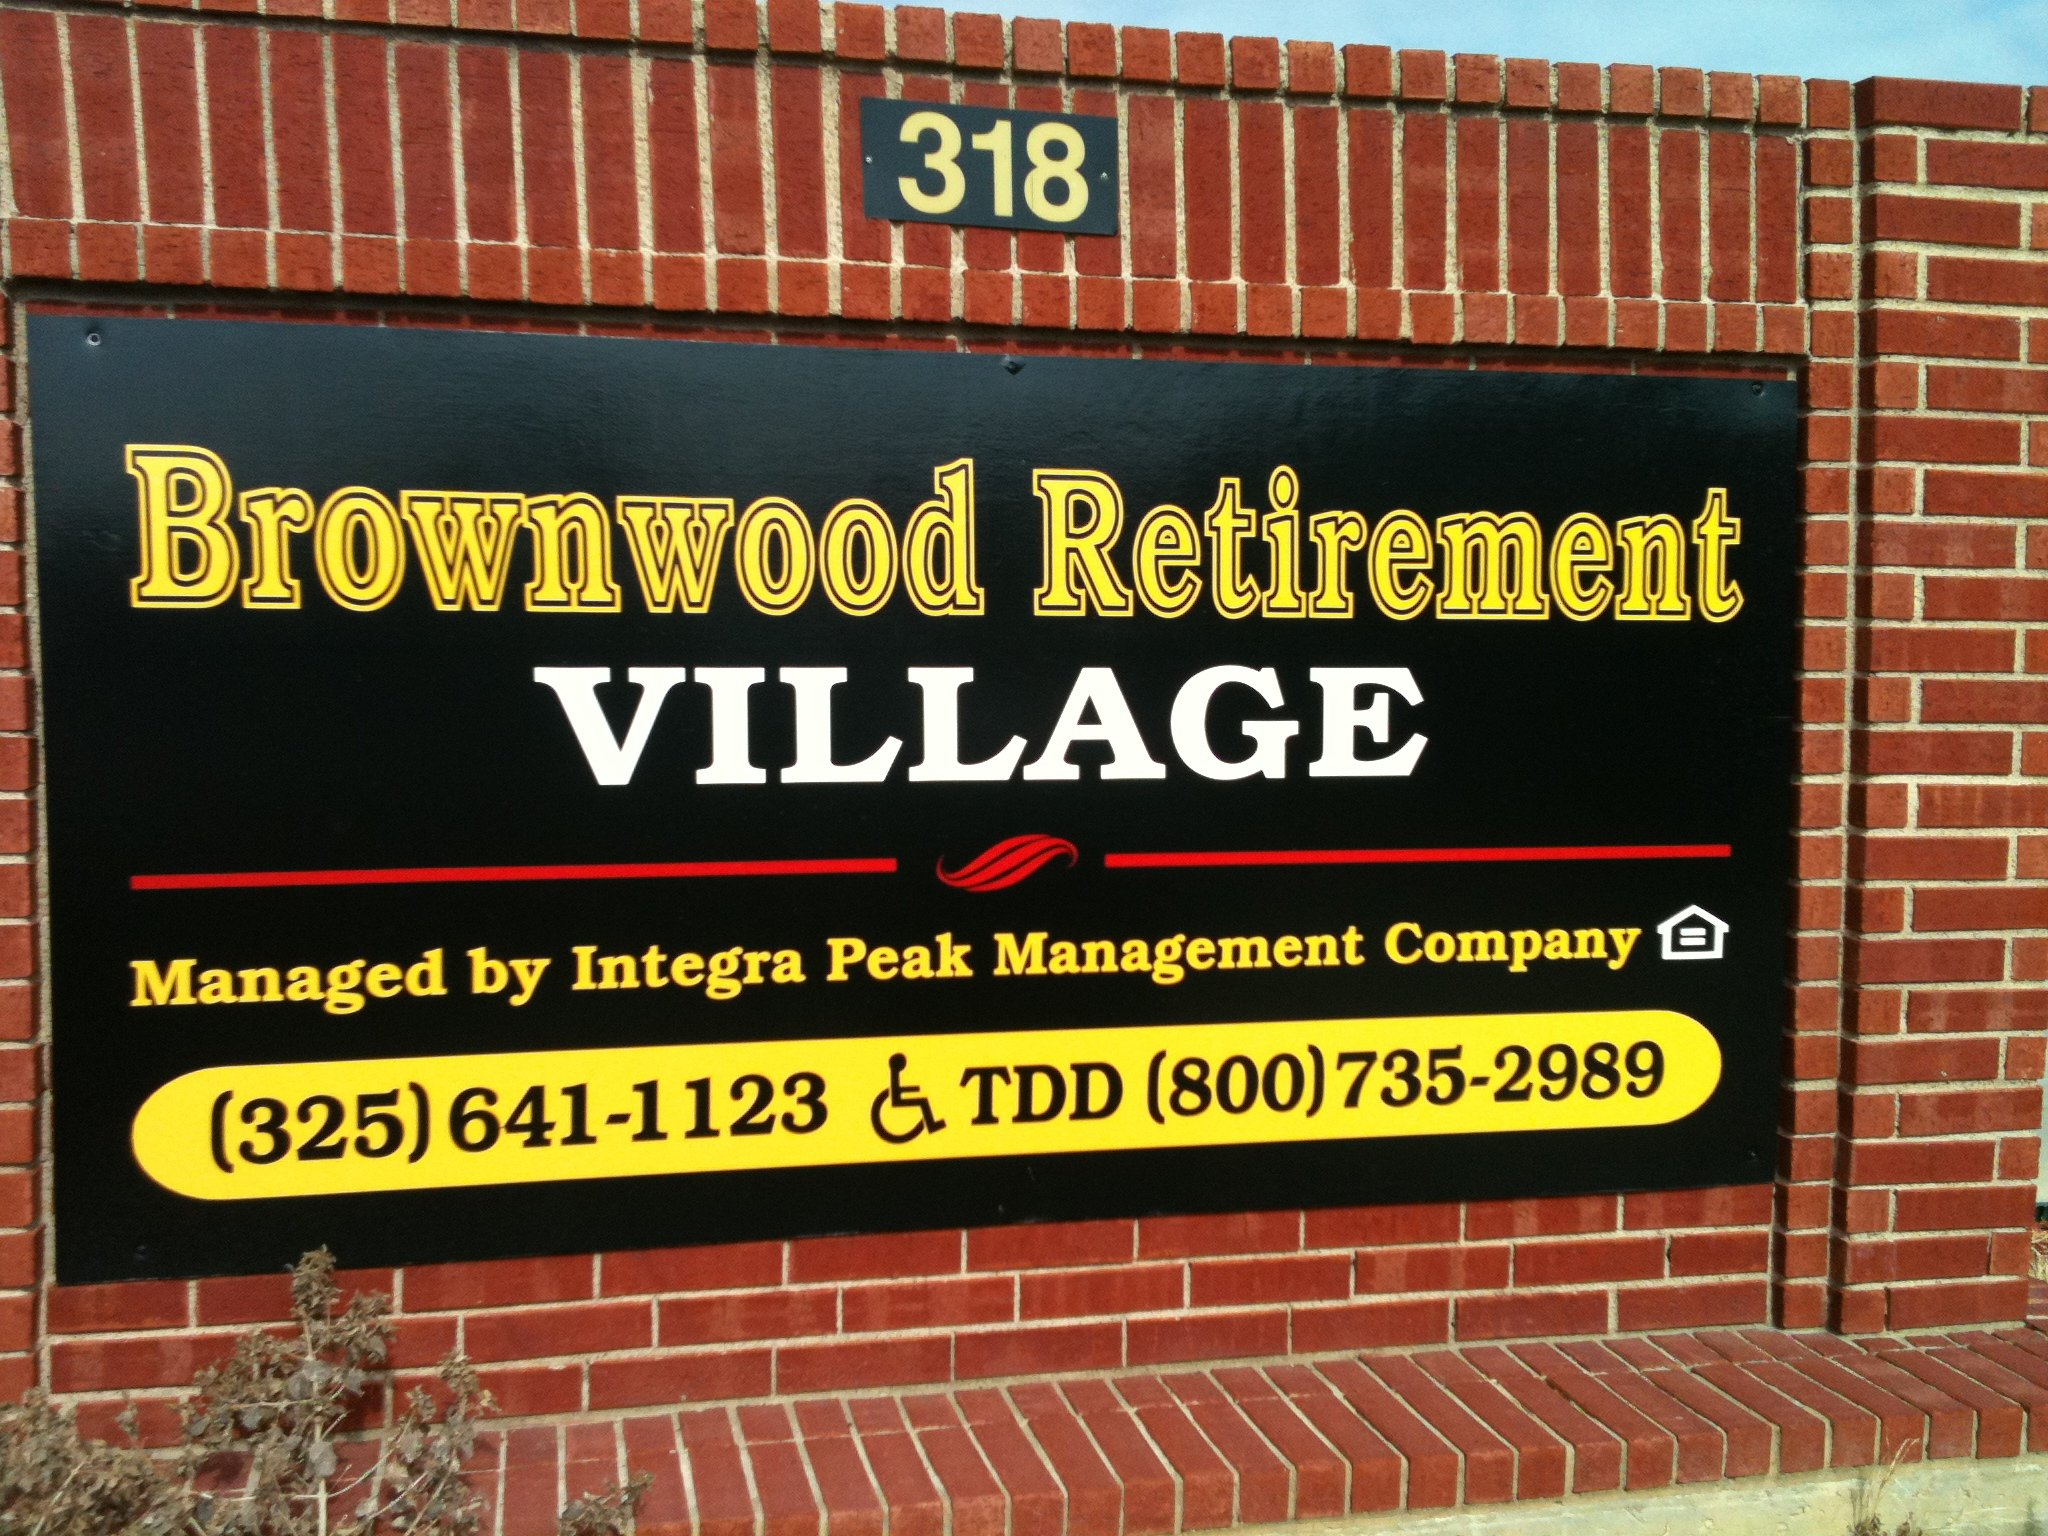 Brownwood Retirement Village